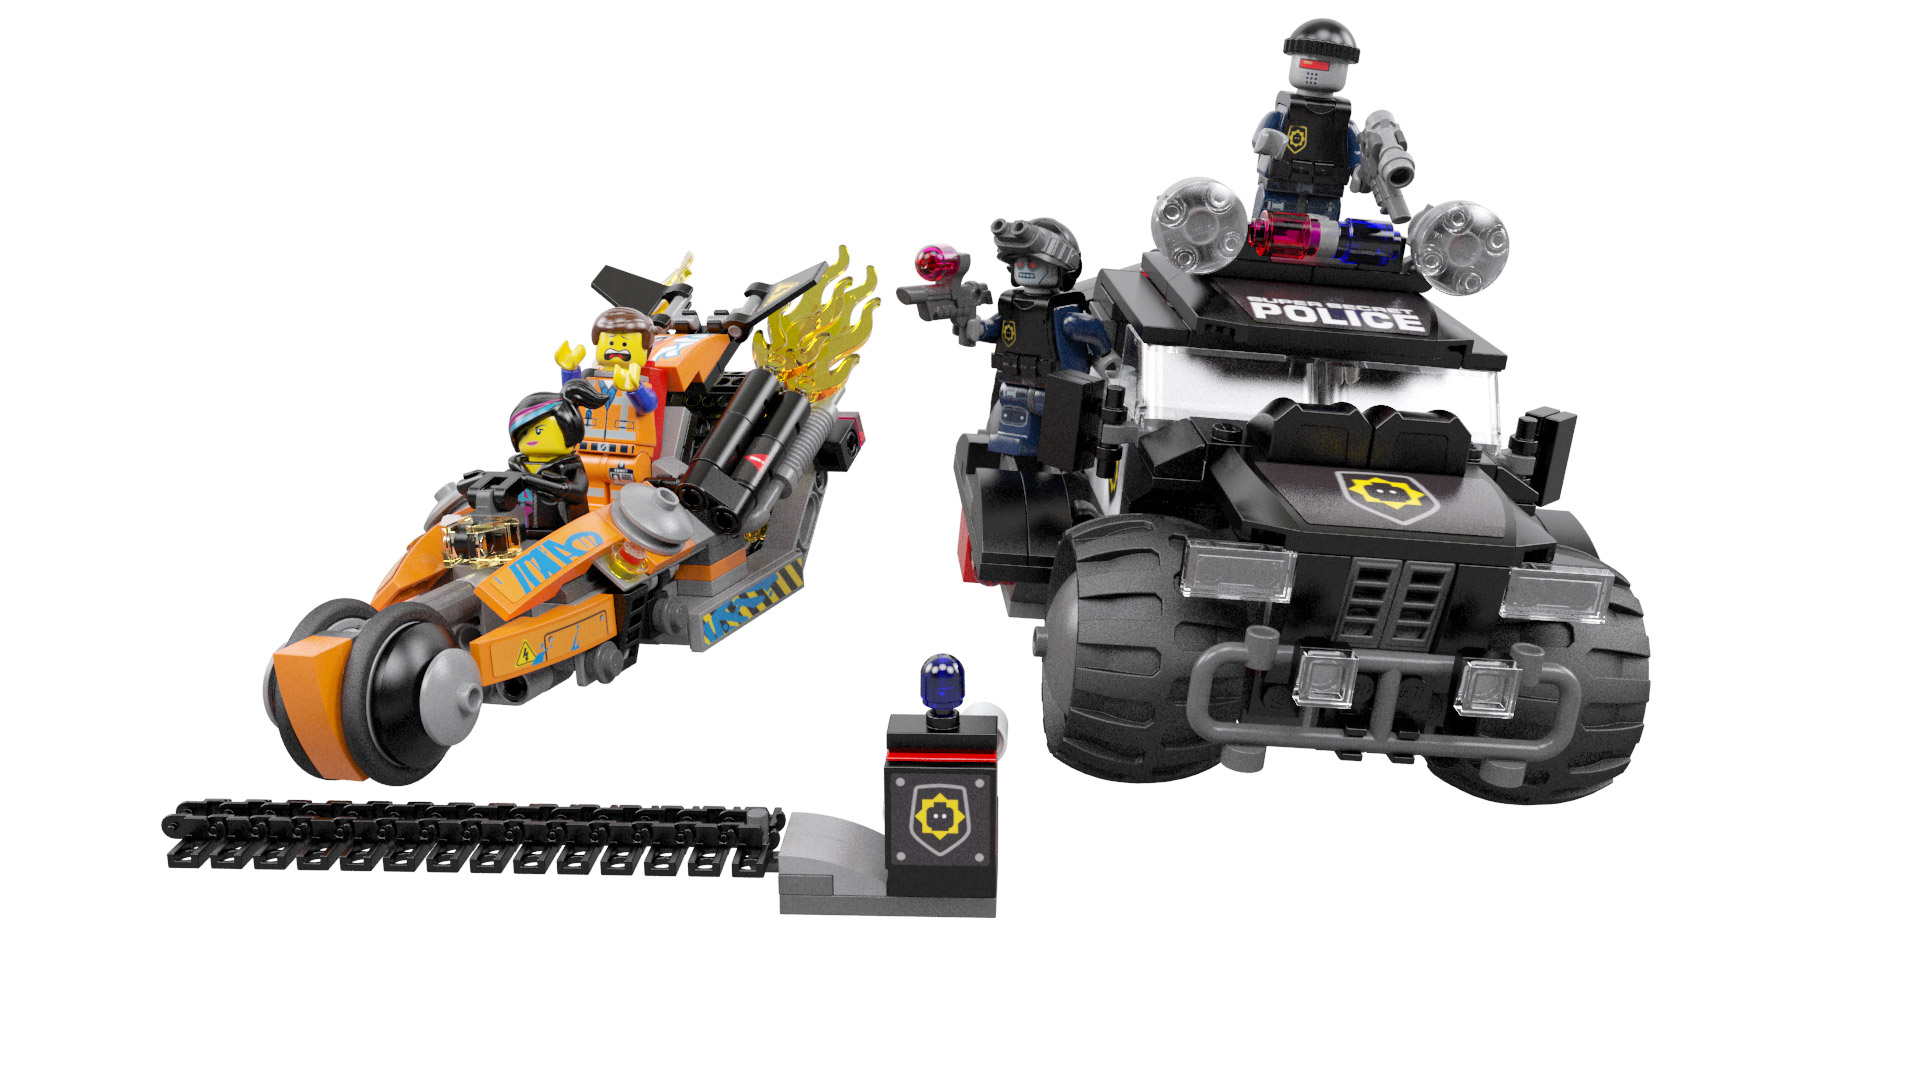 LEGO Announces The LEGO Movie LEGO Merchandise | LEGO News | From